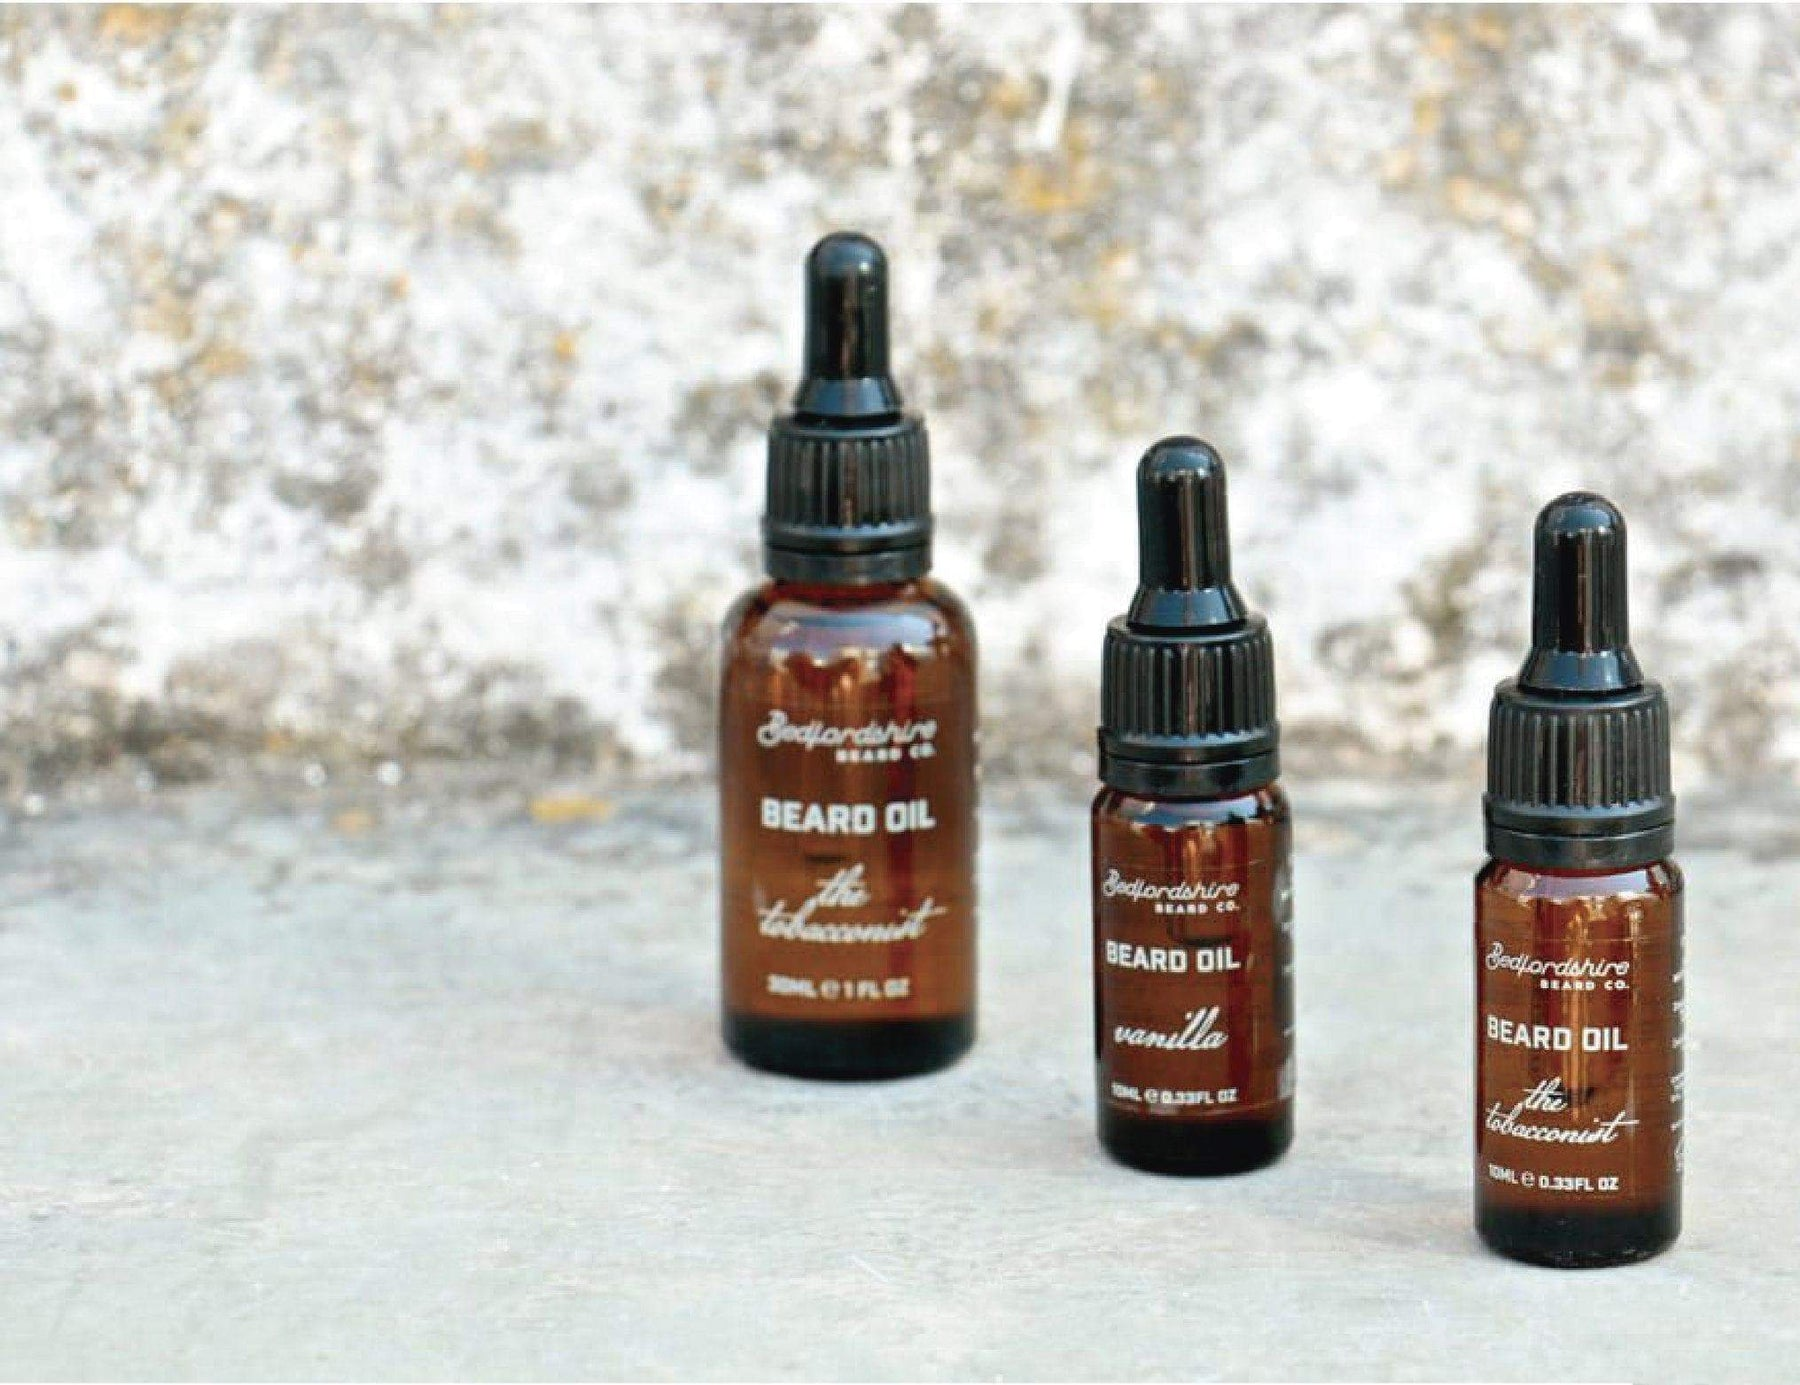 Beard Oil | Why you should choose natural product